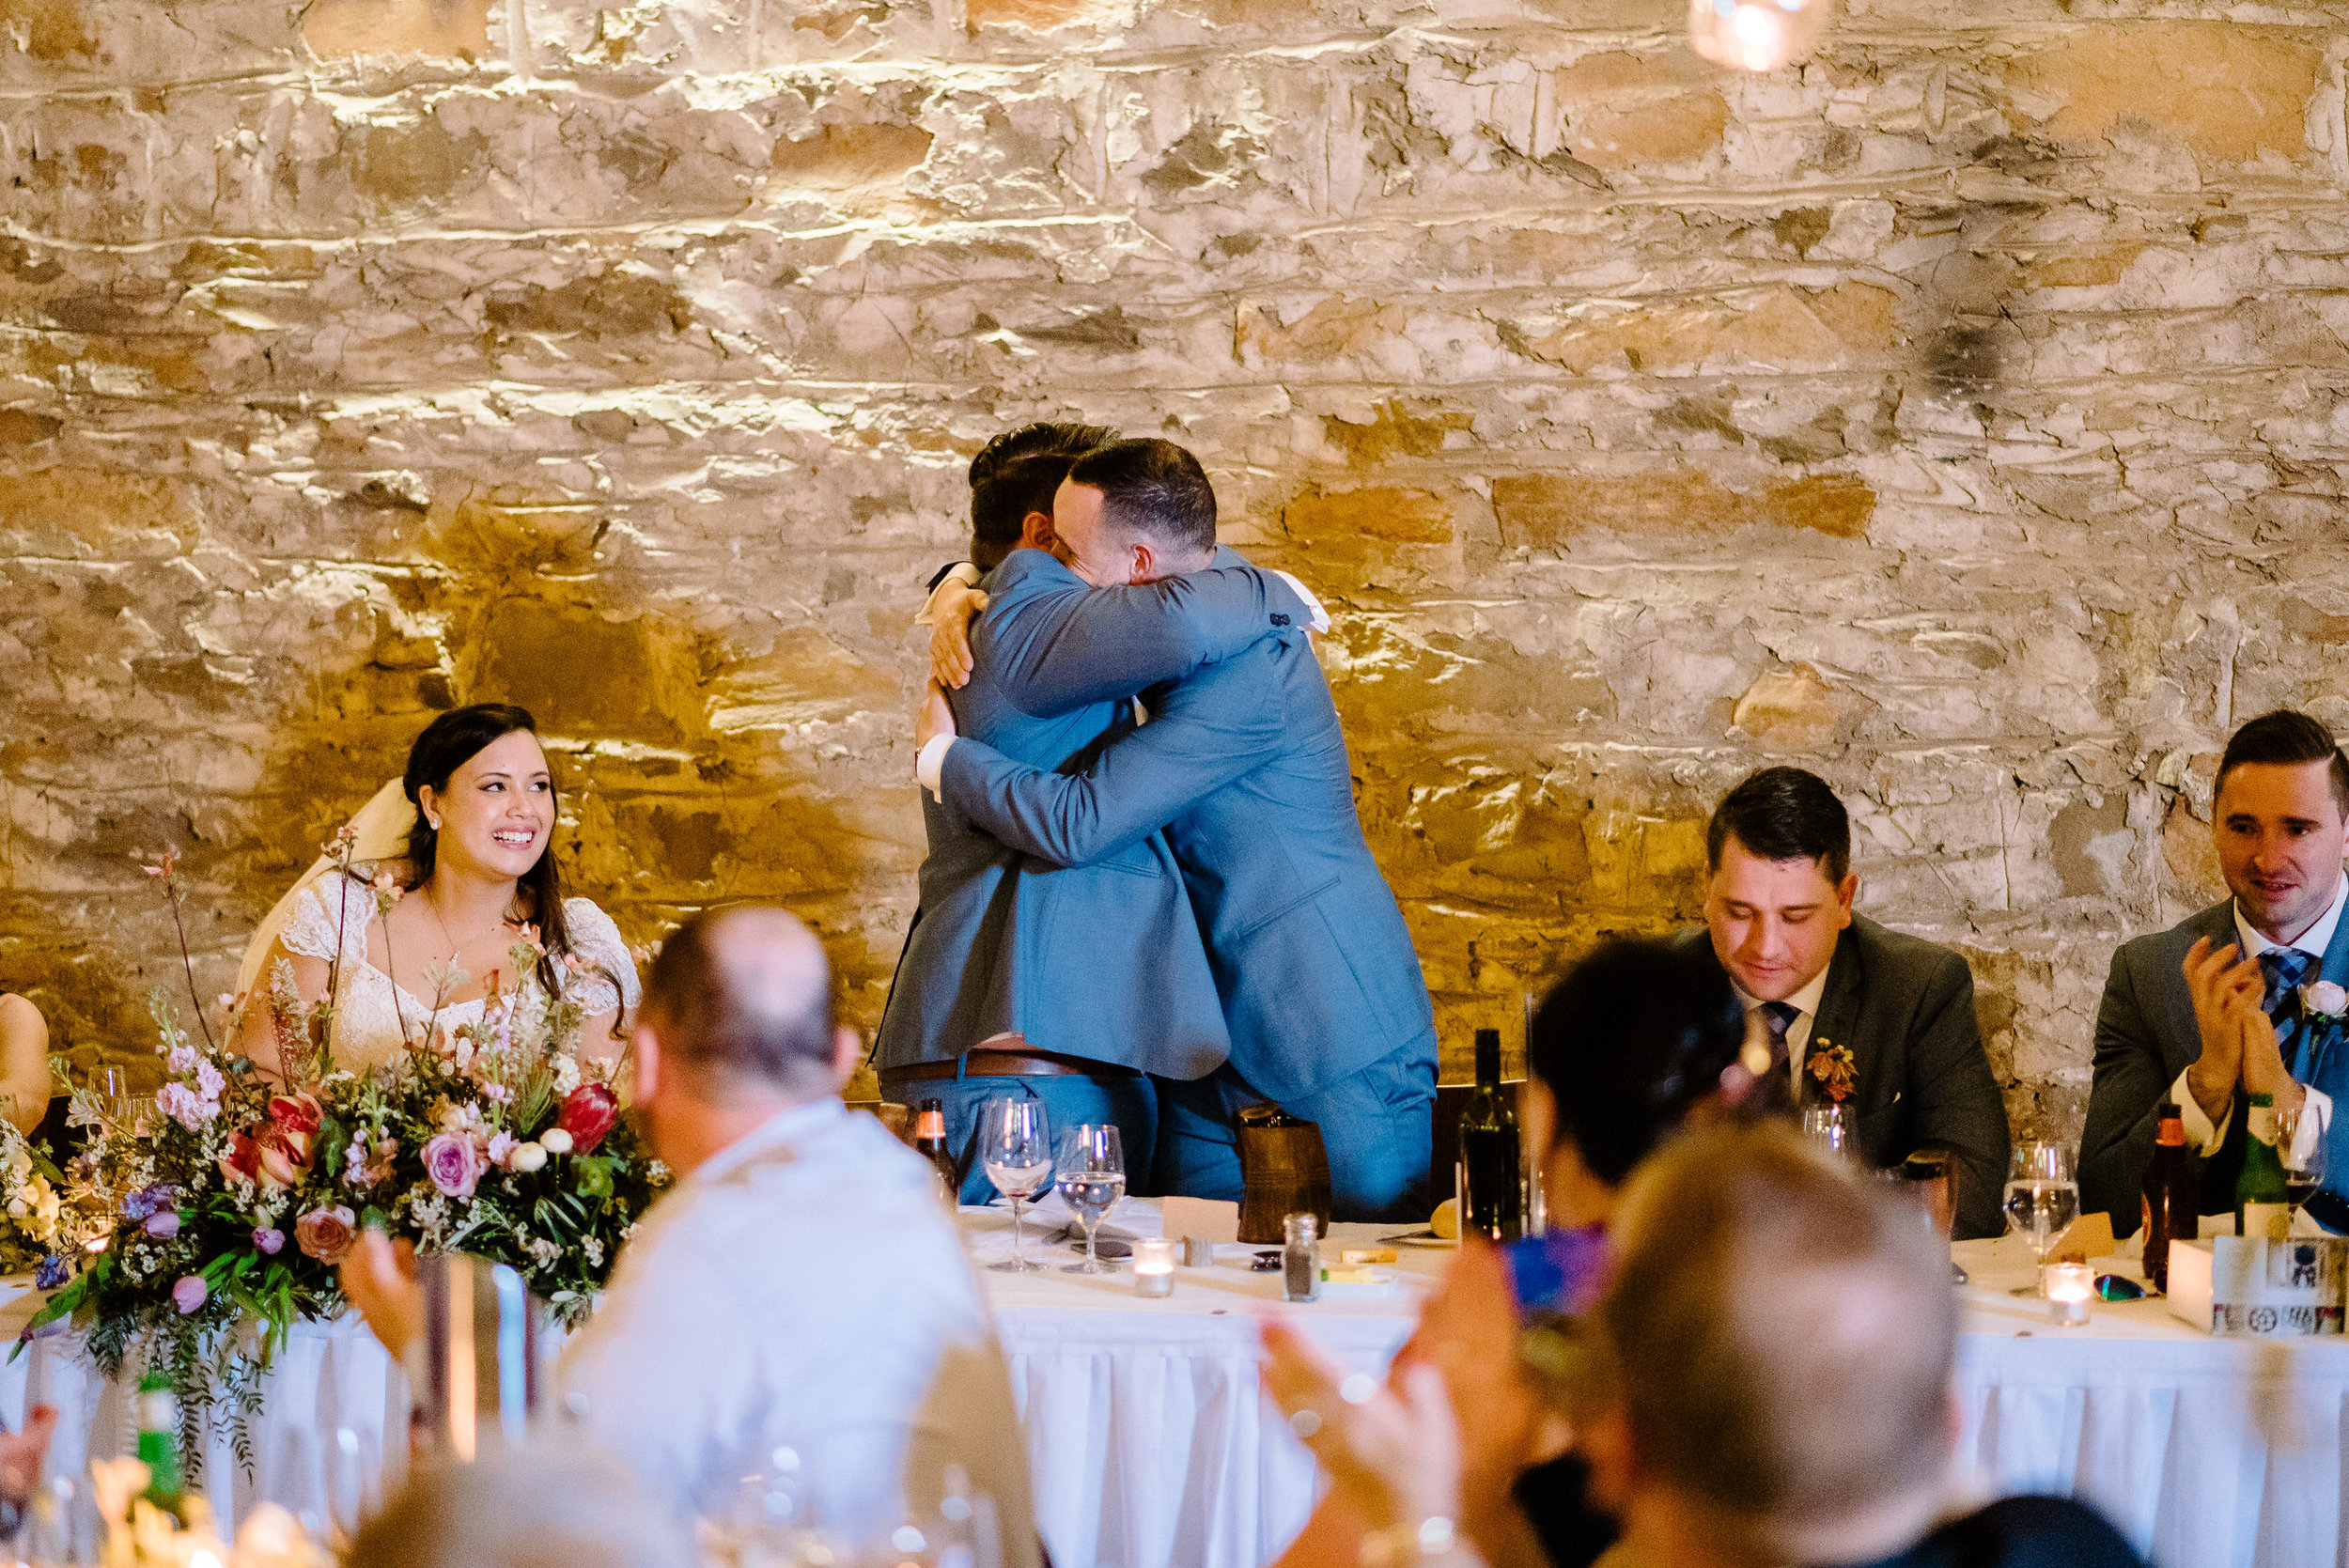 Chateau_Dore_Wedding_Photography_Justin_and_Jim-242.JPG